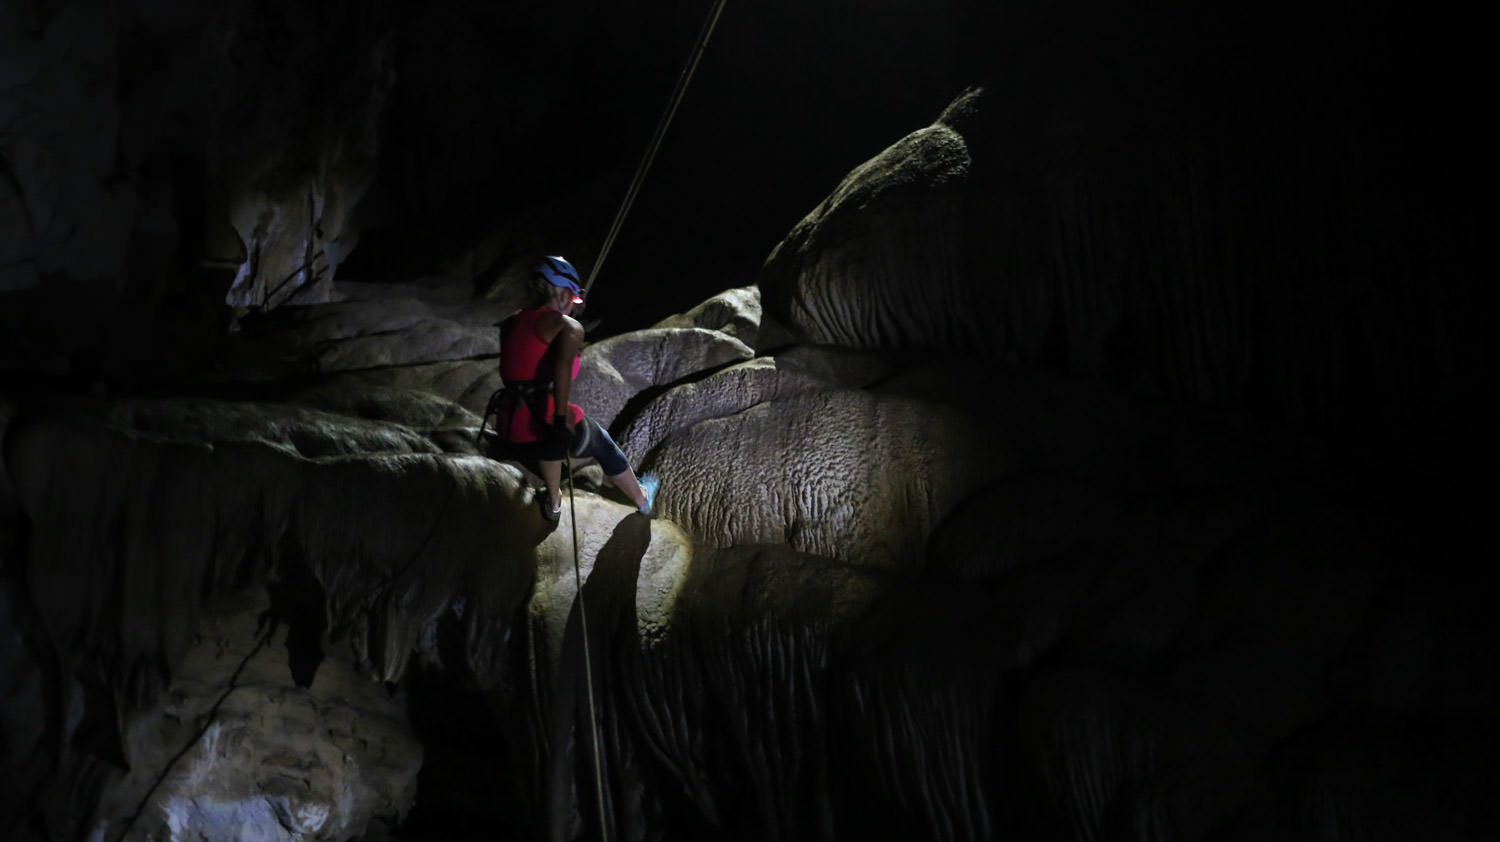 Rappelling in the dark